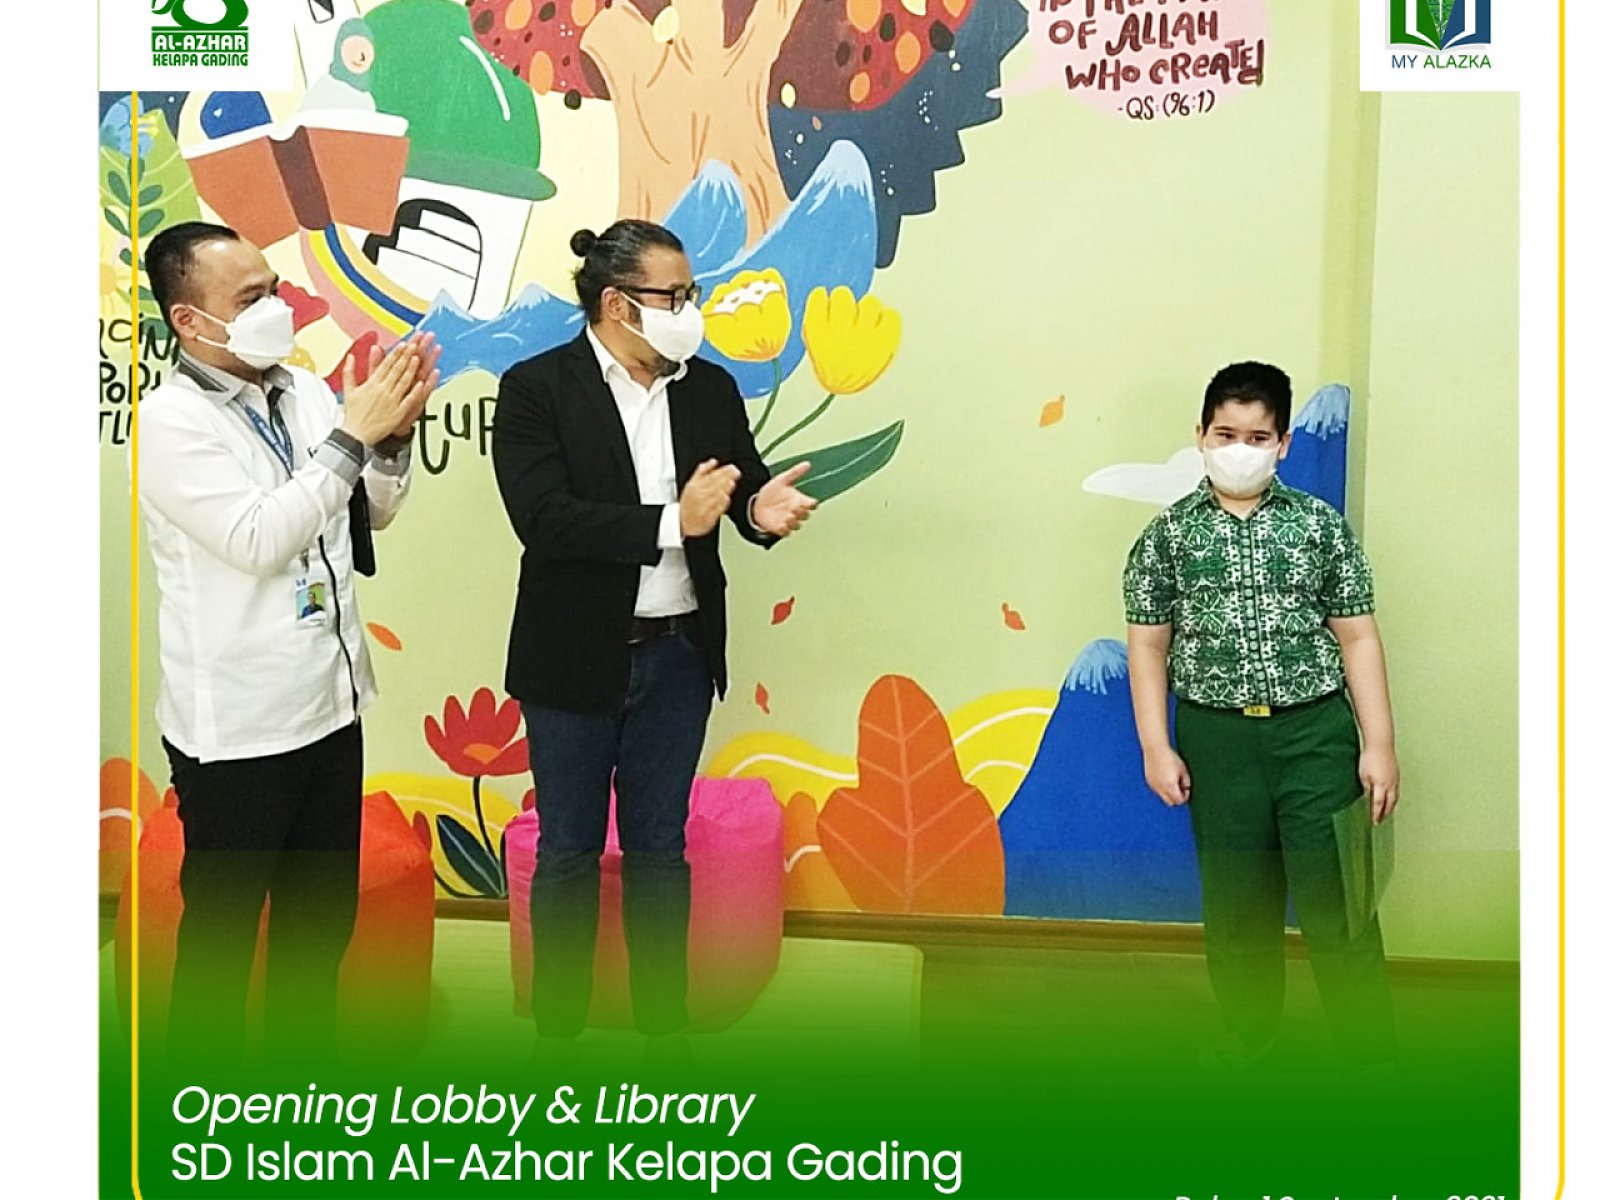 Opening for New Lobby & Library